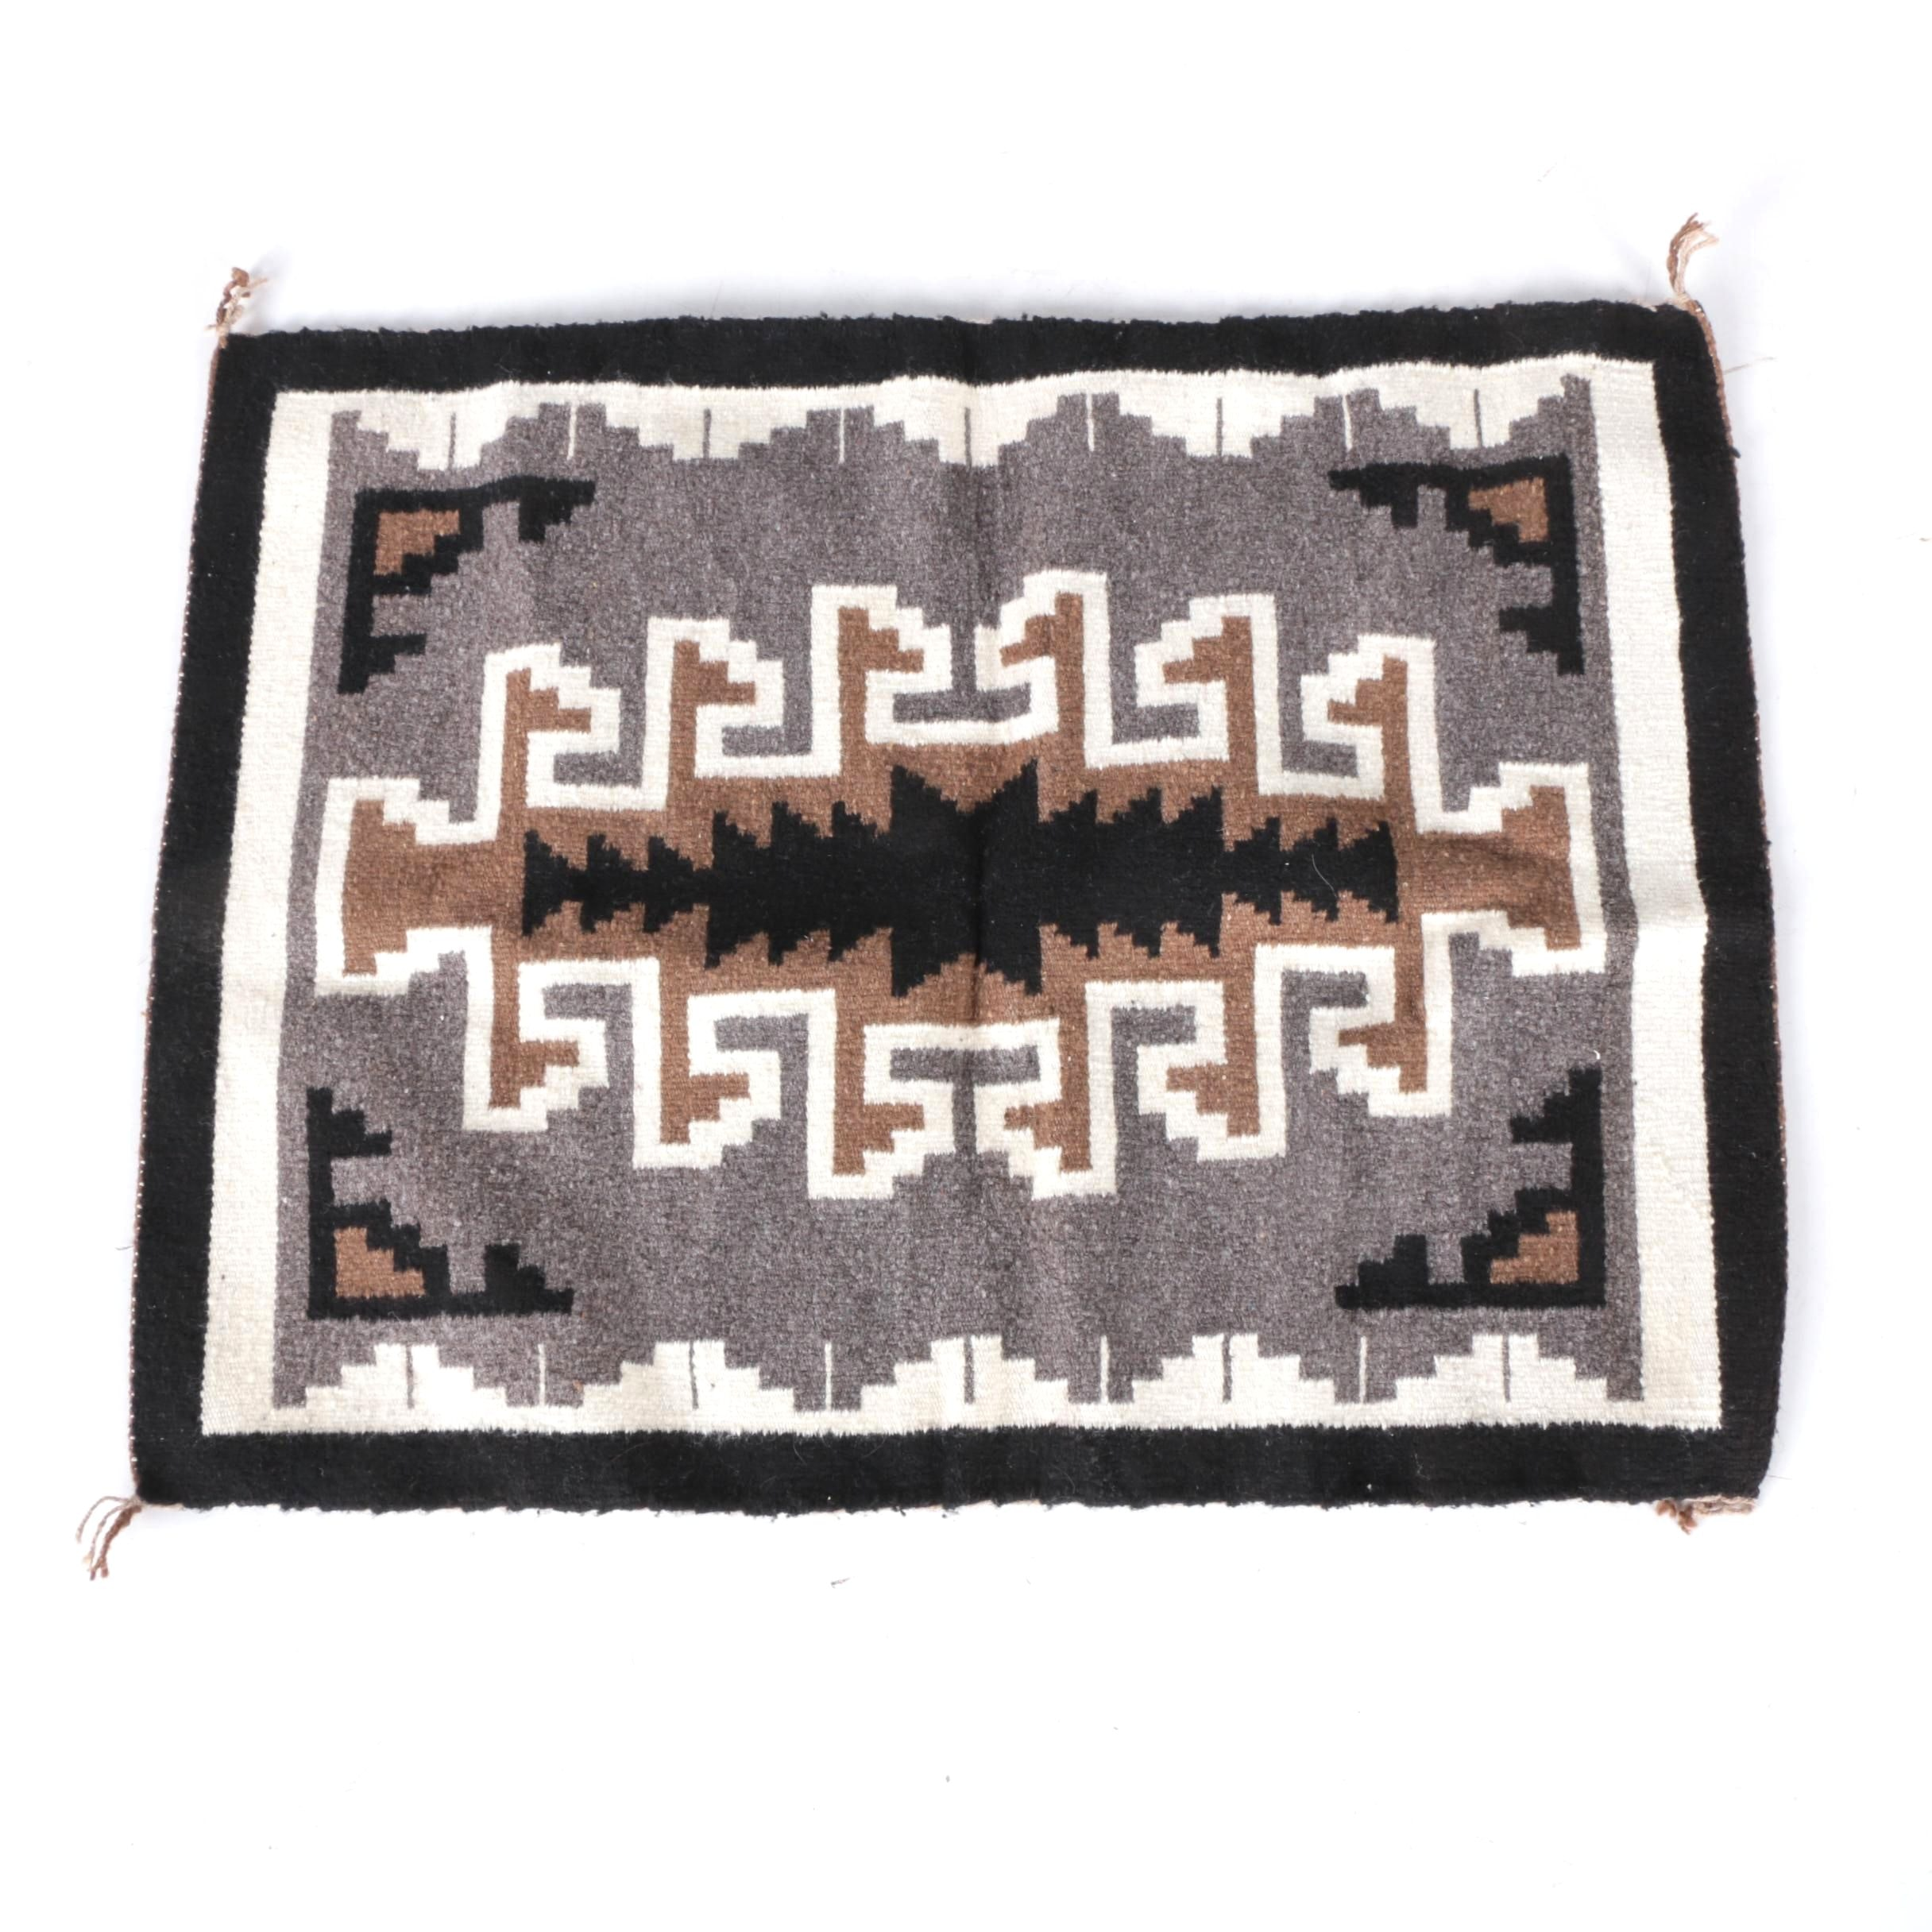 Handwoven Native American-Style Accent Rug